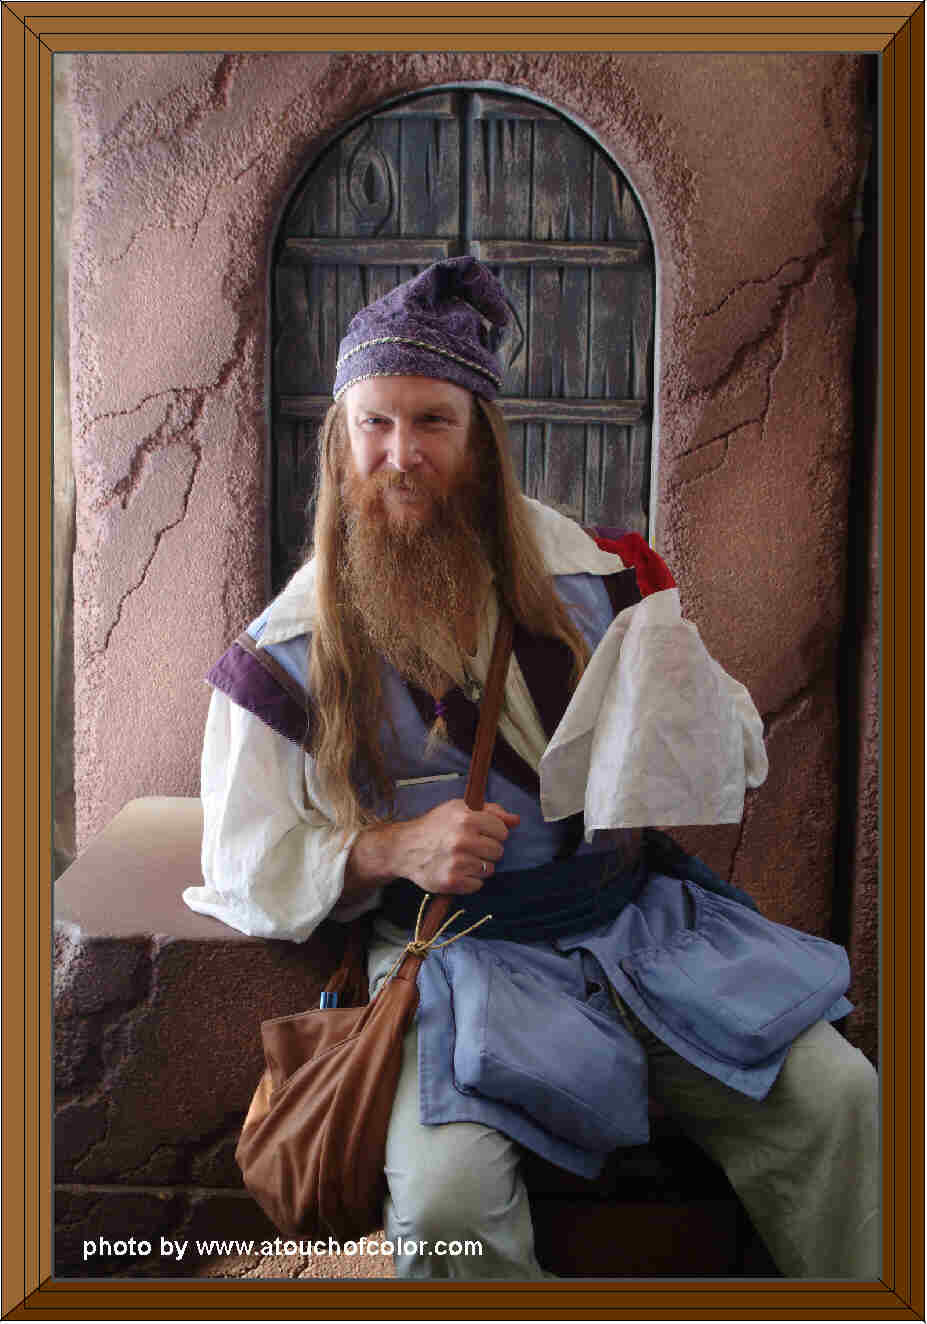 Ed the Wizard at the Seekonk Public Library December 27th